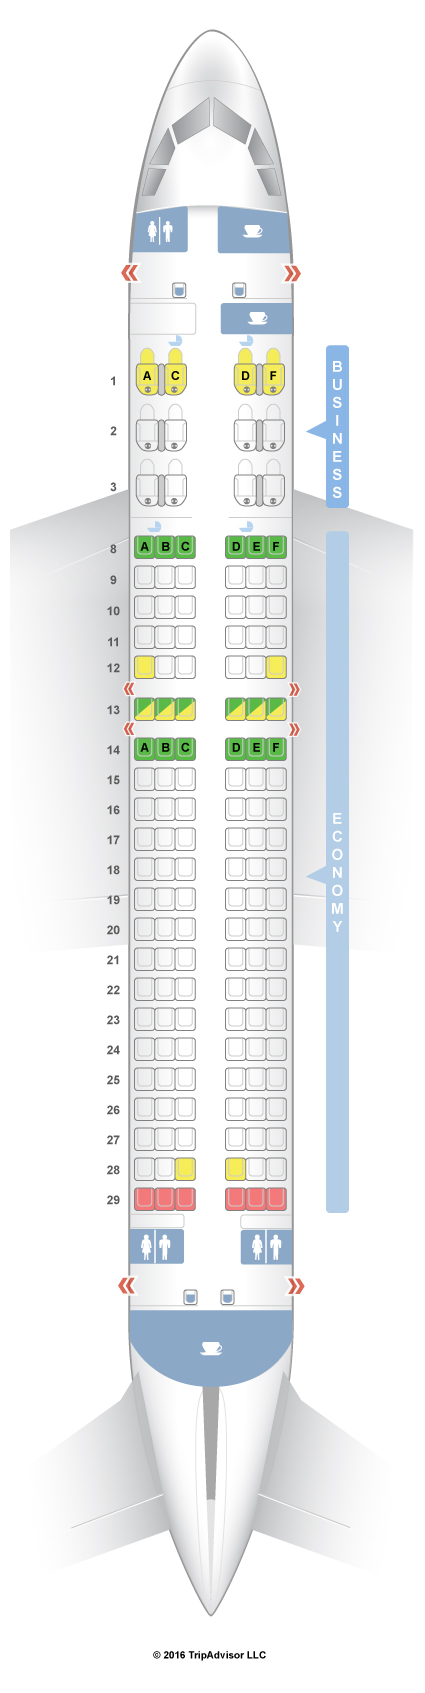 SeatGuru Seat Map Qatar Airways Airbus A V - Us airways seat map